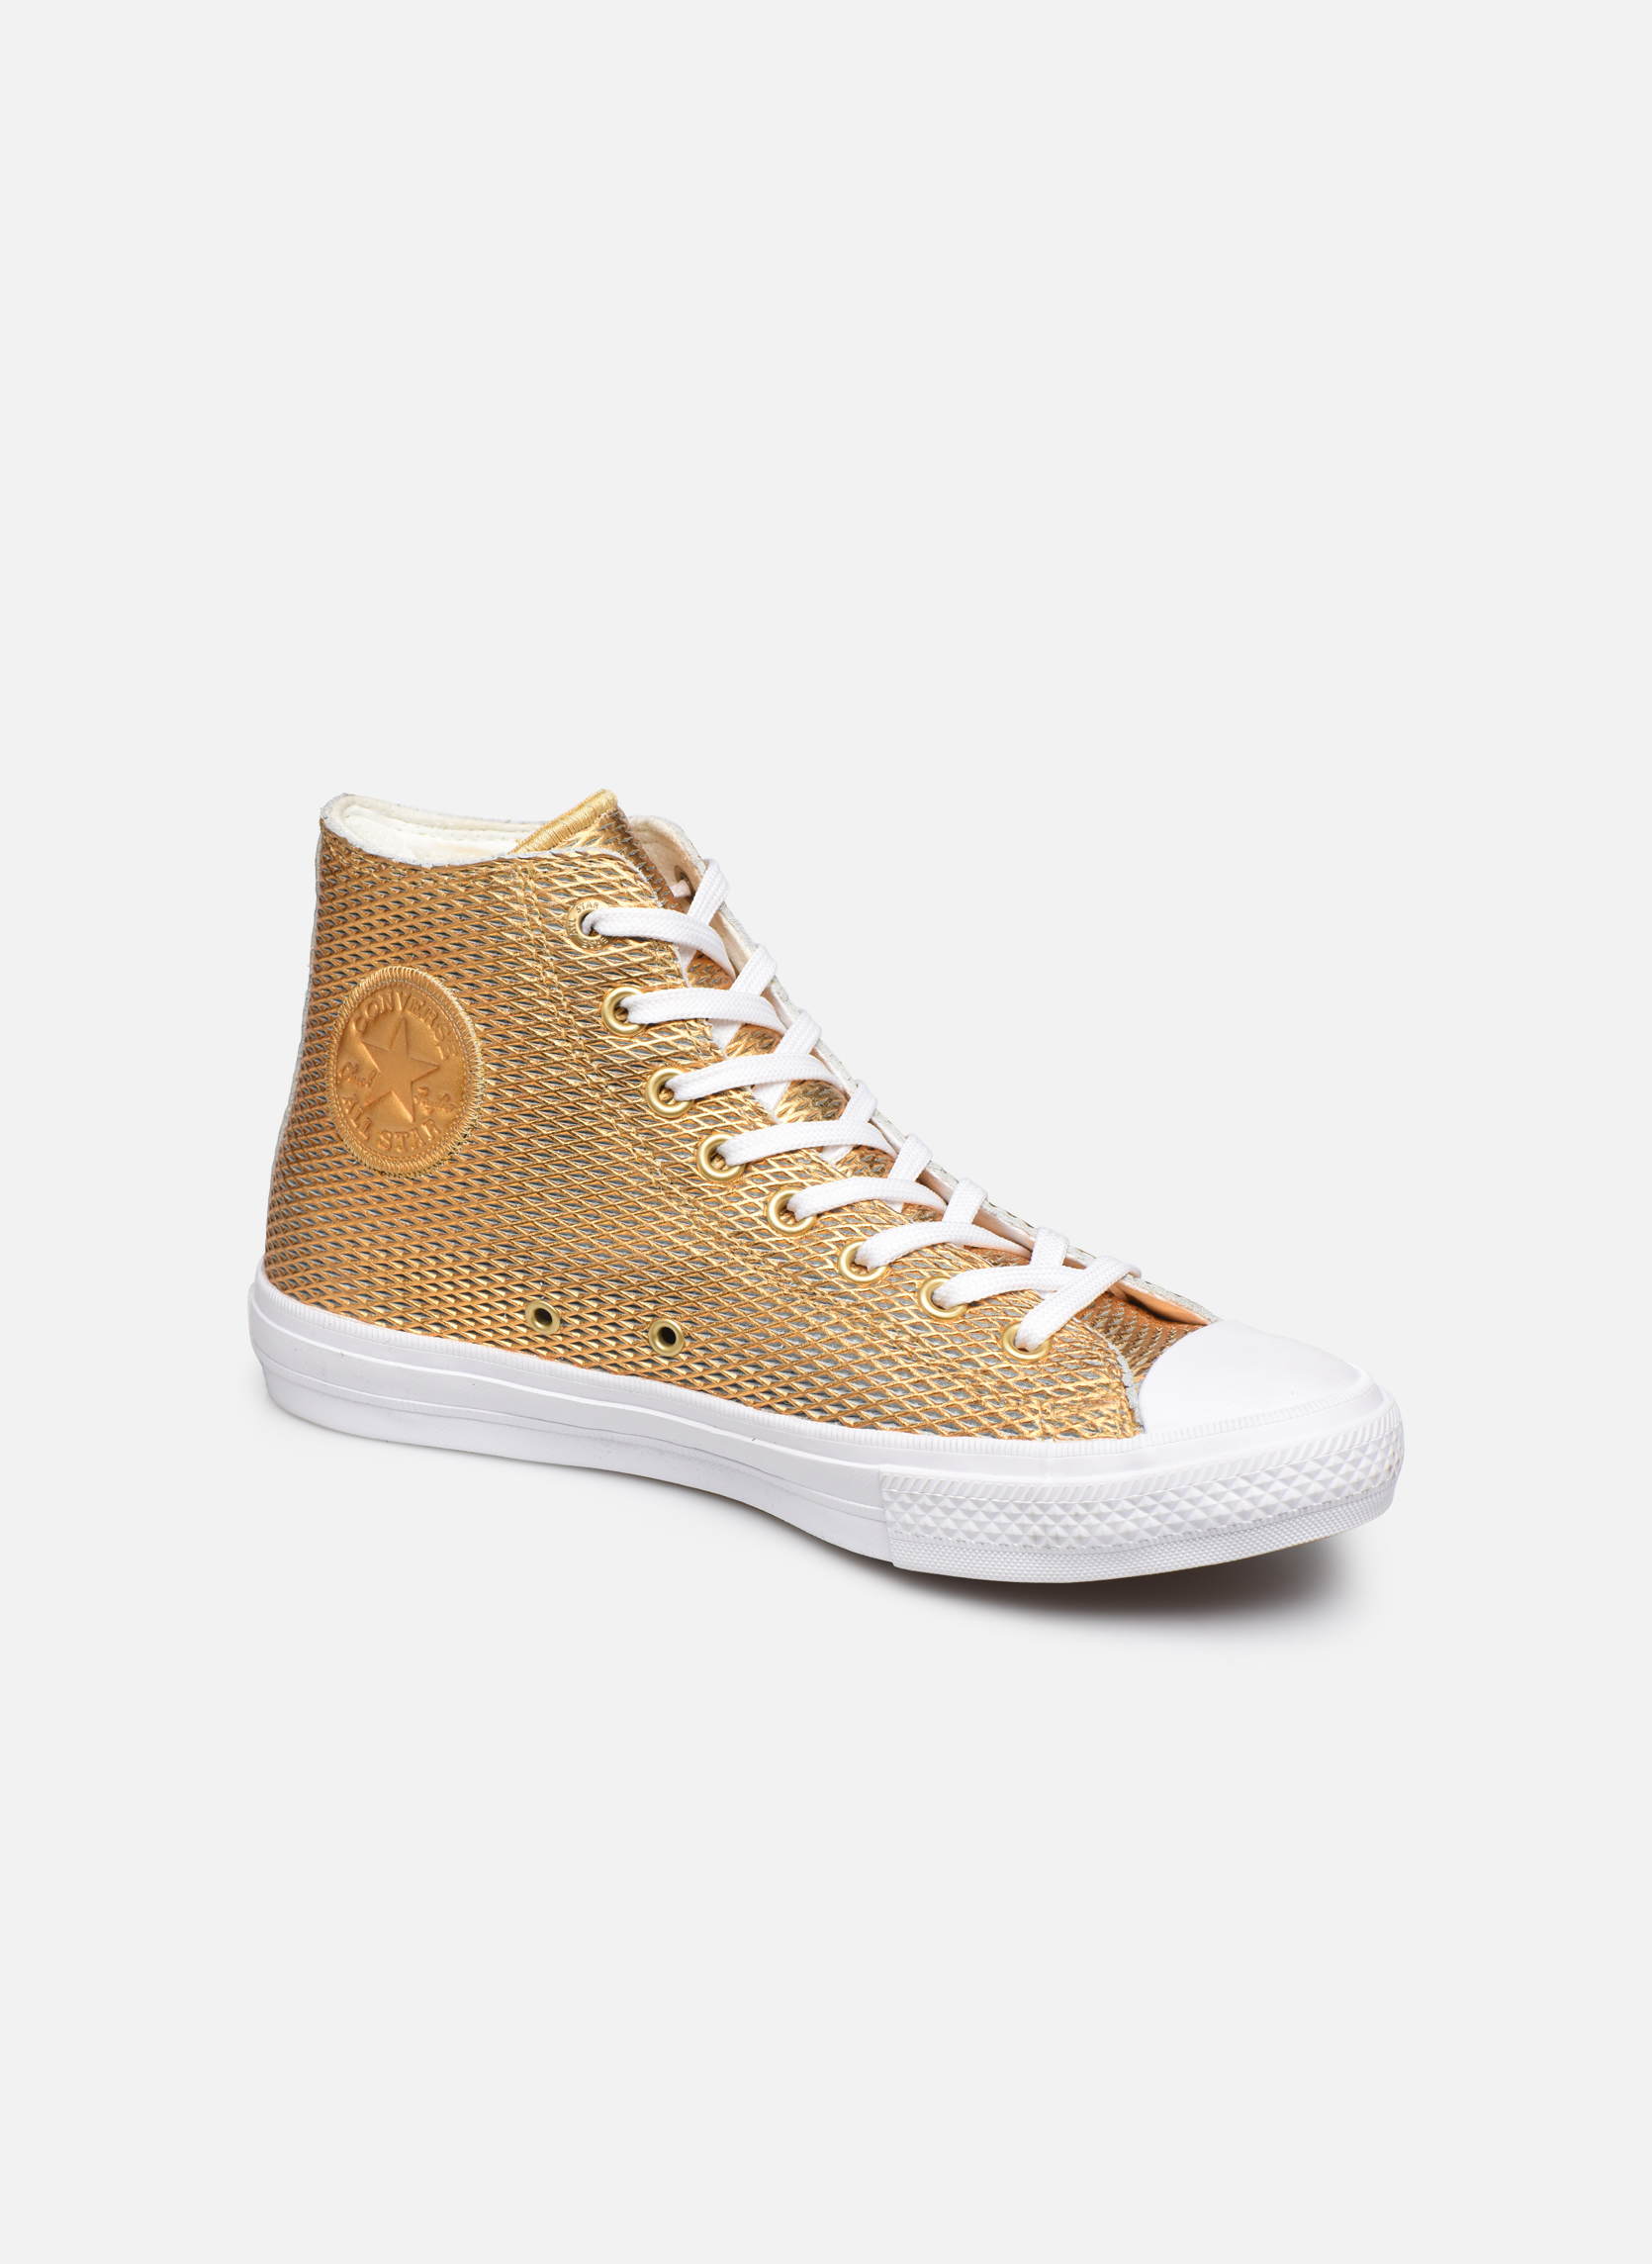 Converse Chuck Taylor All Star II Hi Perf Metallic Leather (Or et bronze) - Baskets chez Sarenza (289446)